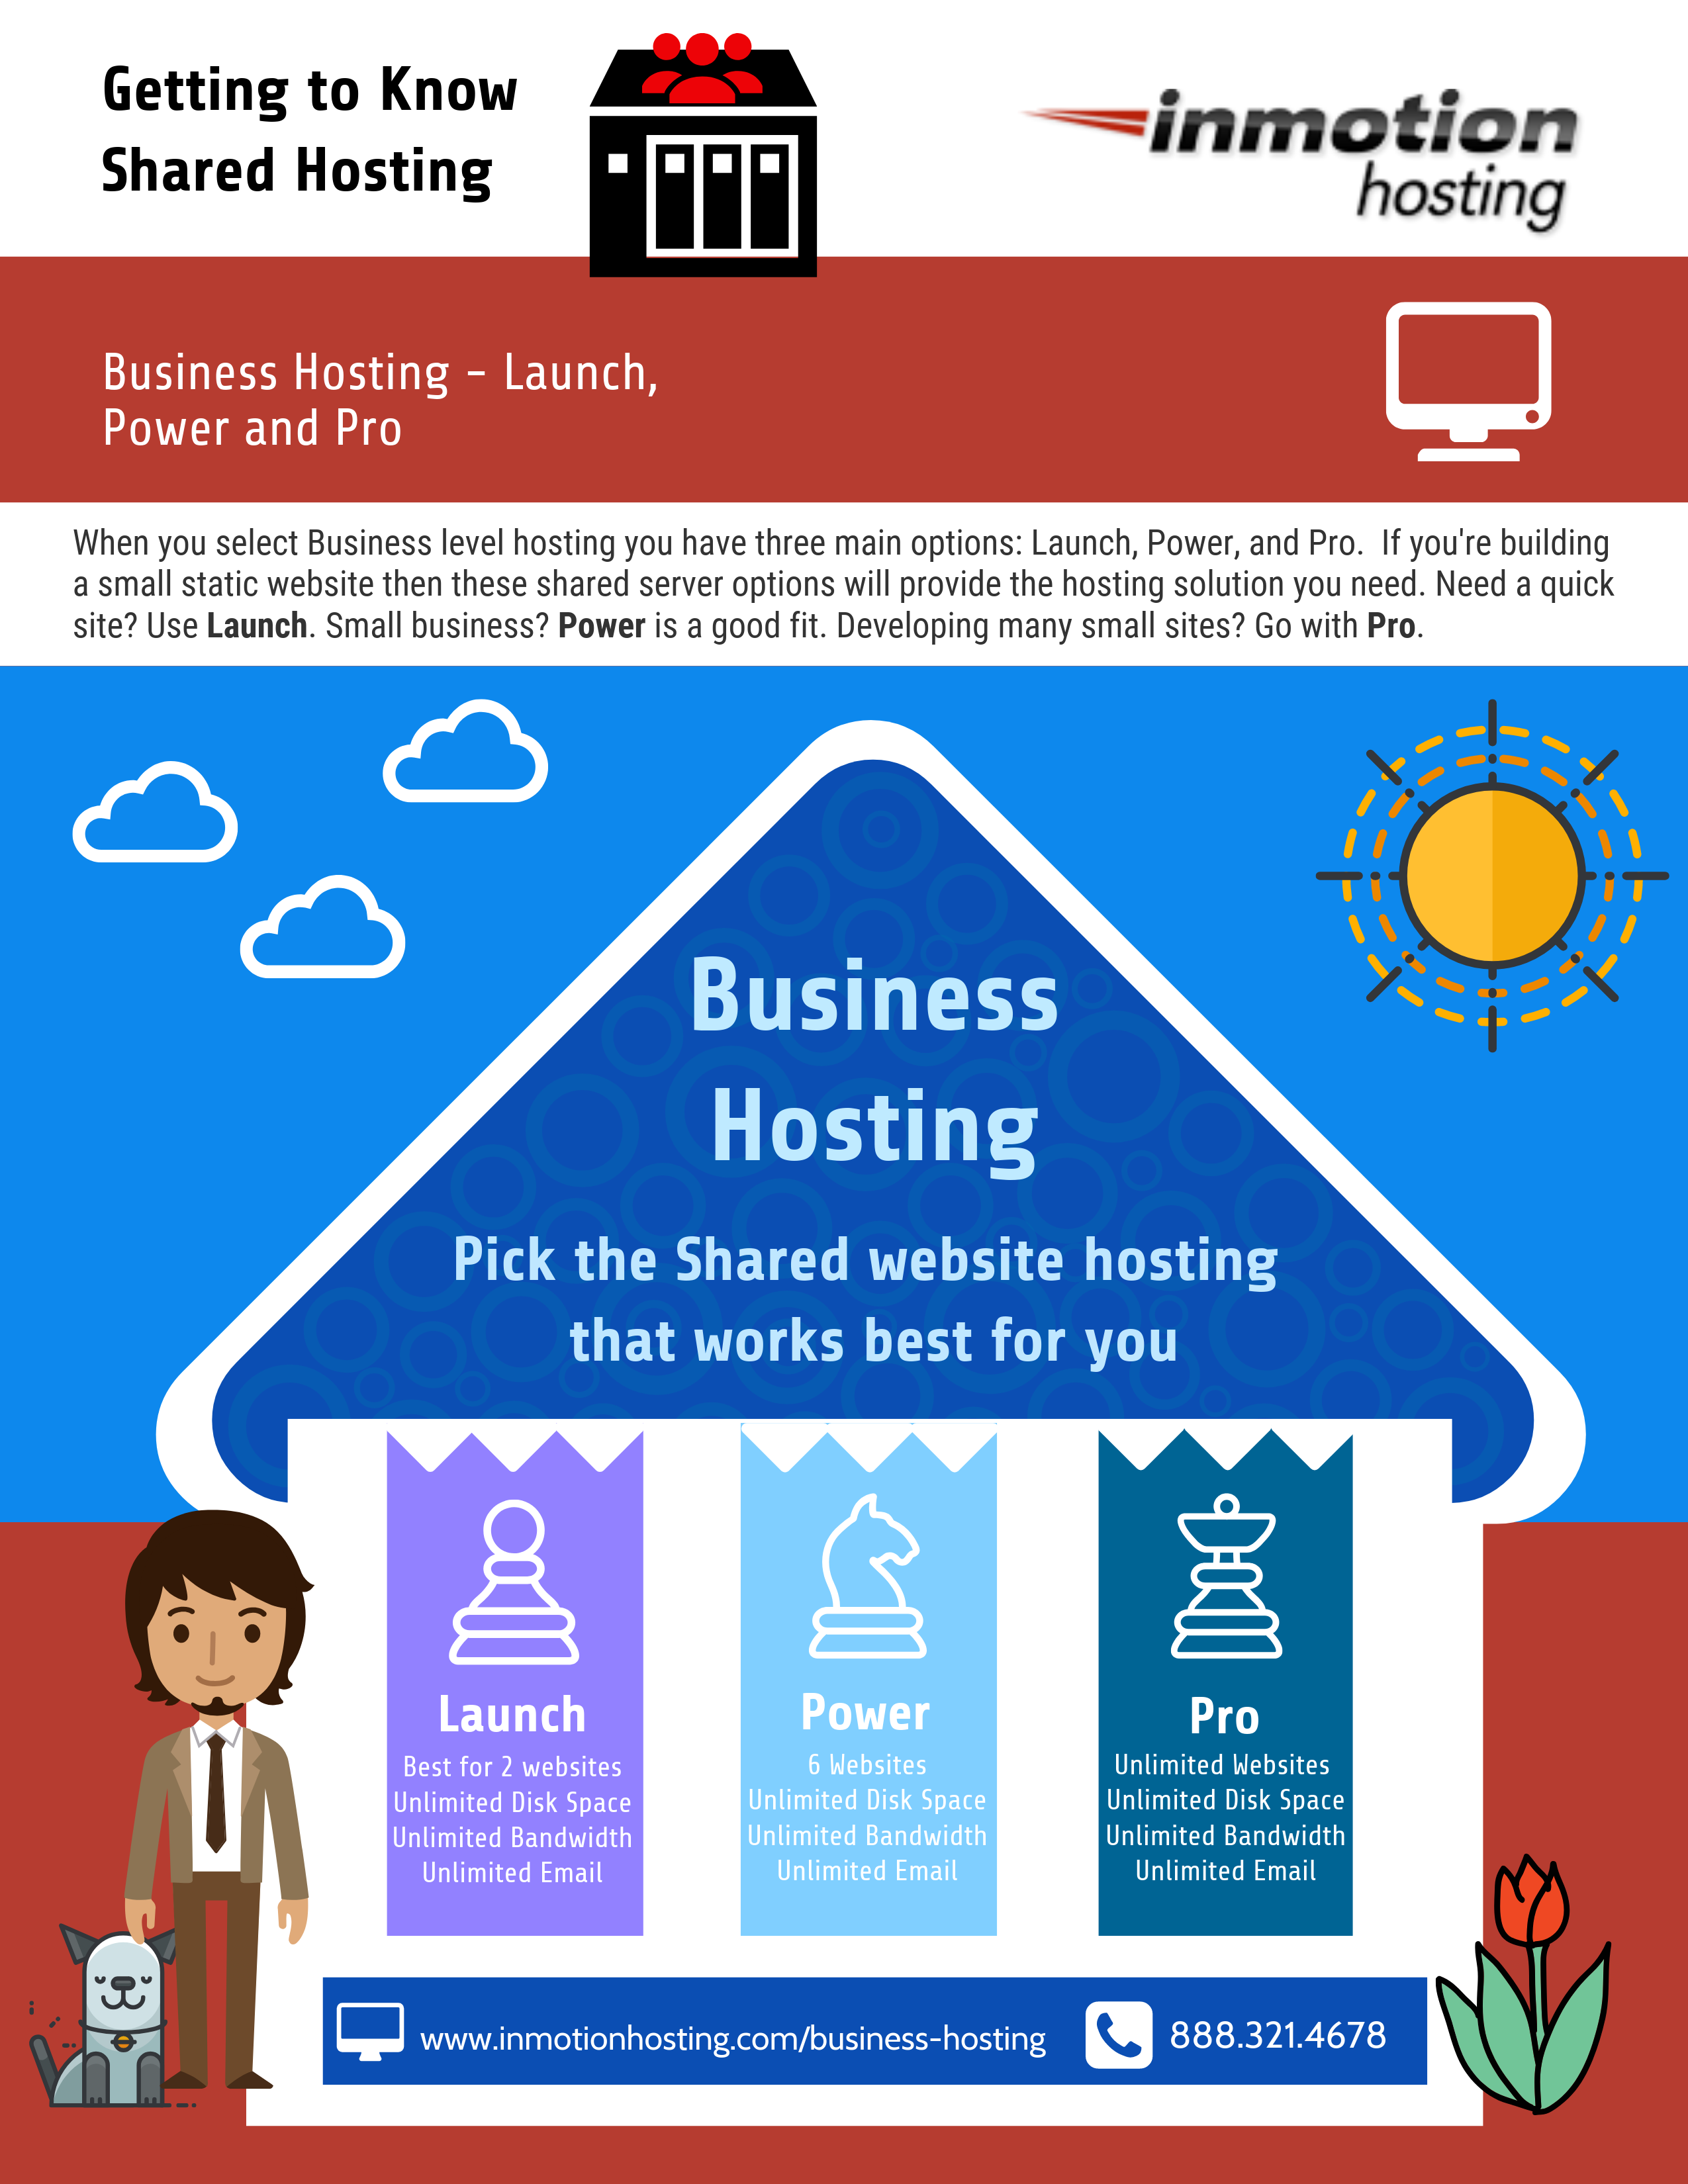 Getting to Know Shared Hosting